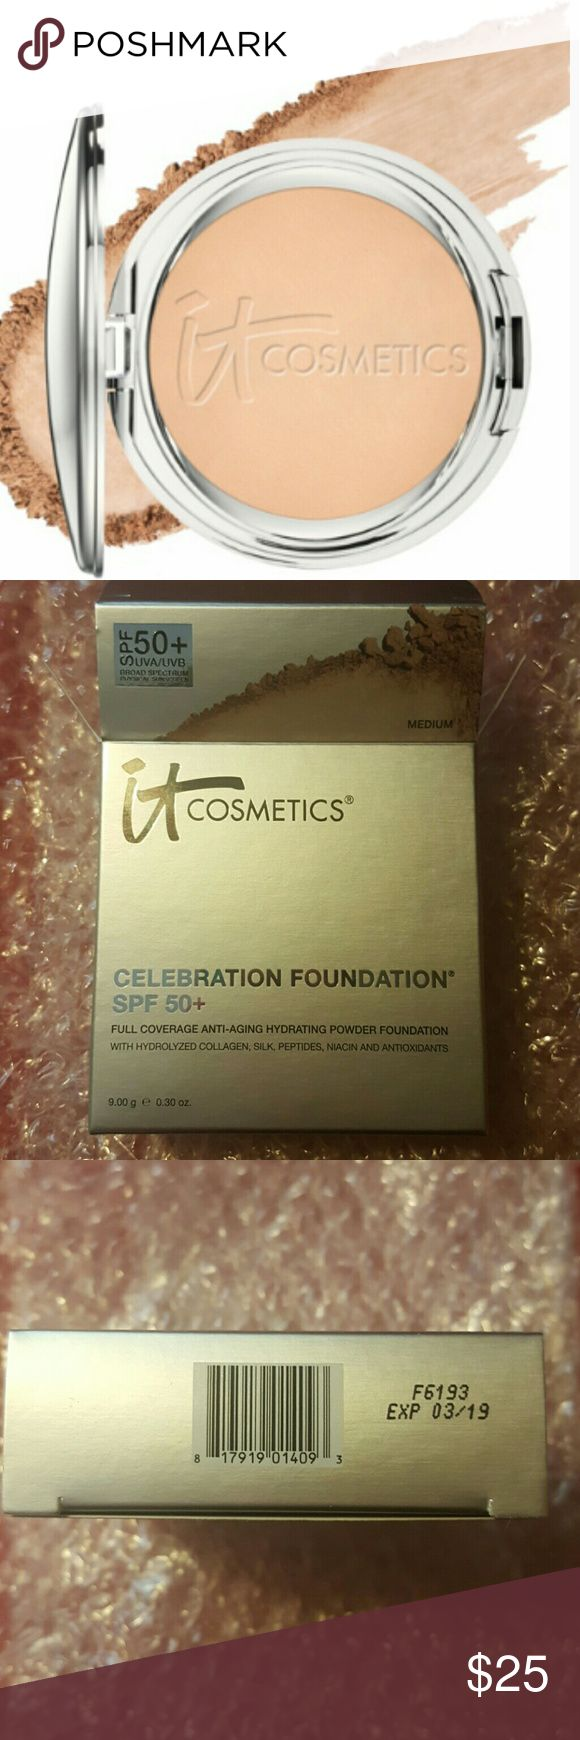 New It Cosmetics Celebration Foundation SPF 50+ Brand new It Cosmetics Celebration Powder Foundation SPF 50+ in shade Medium. Celebration Foundation SPF 50+ is your hydrating, full-coverage powder foundation. Rich in peptides, hydrolyzed collagen, hyaluronic acid, grape seed oil, and other antiaging ingredients, this foundation is highly pigmented, delivering full coverage in 30 seconds. Now with SPF 50+ physical-only, broad-spectrum sunscreen, you can treat and protect your skin while…